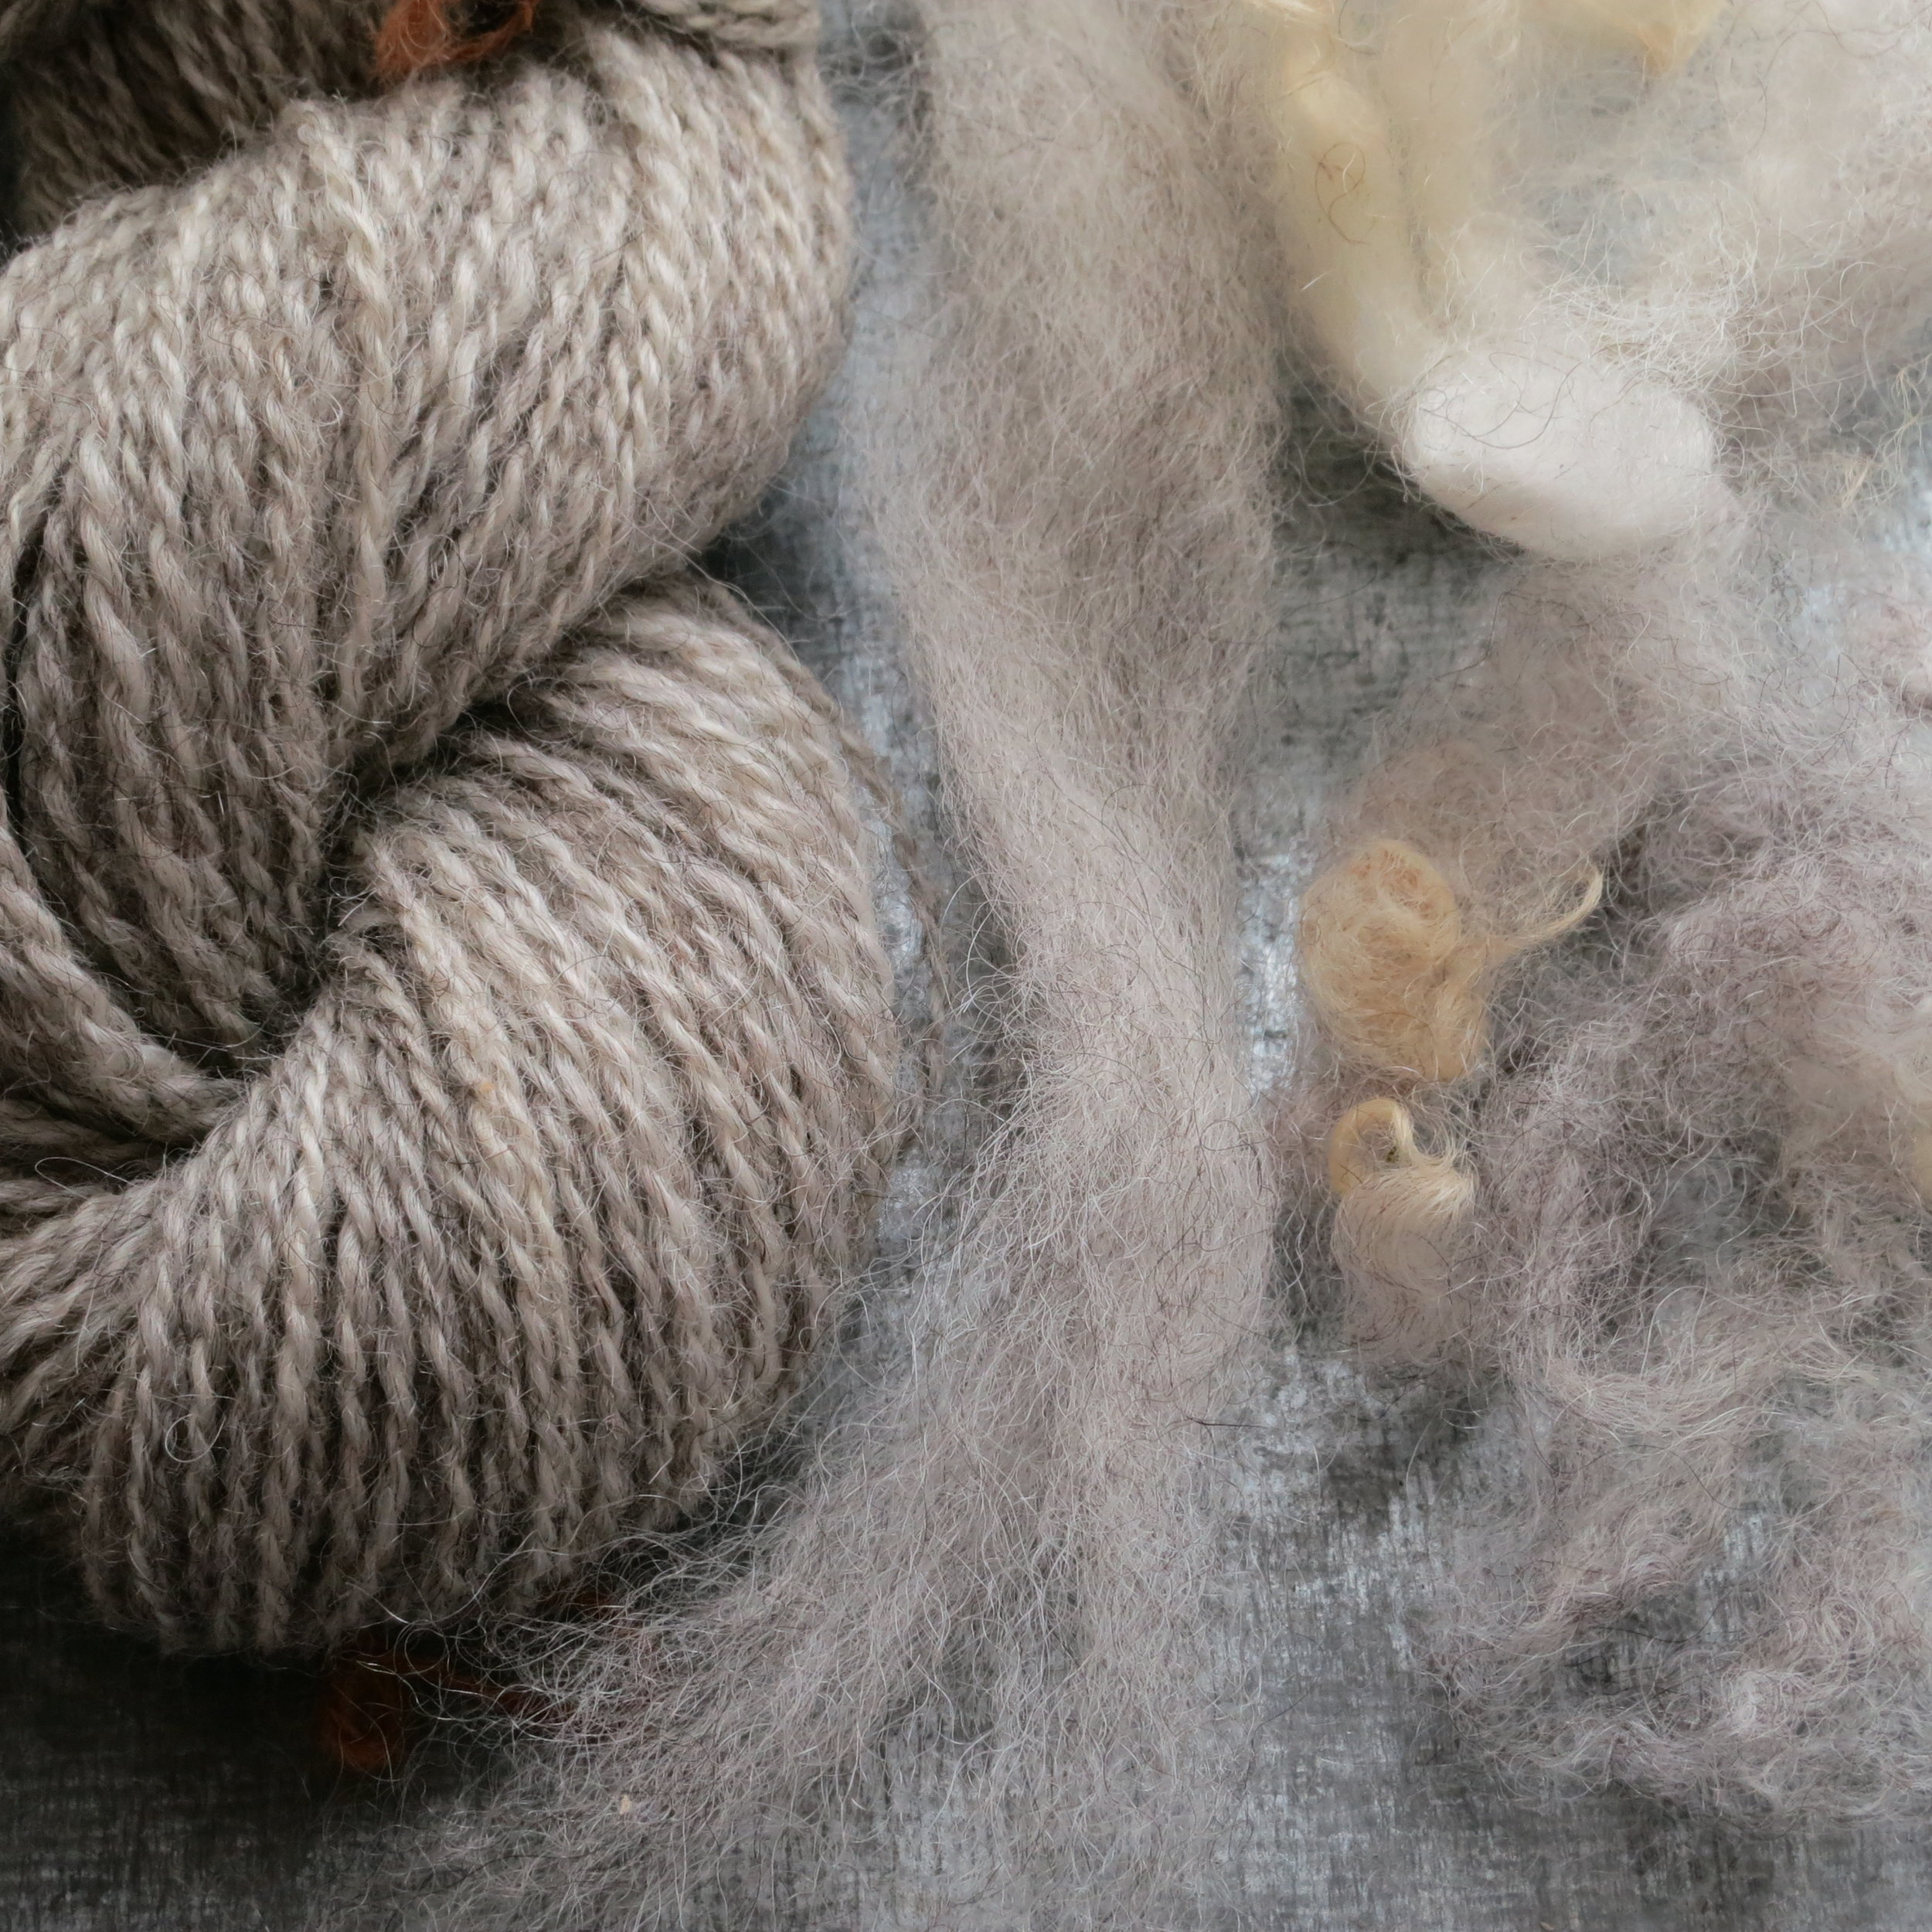 Handspun yarns from the fleeces of Kiira and Silvo, two Gotland x Finn sheep from Prairie Willows Farm.